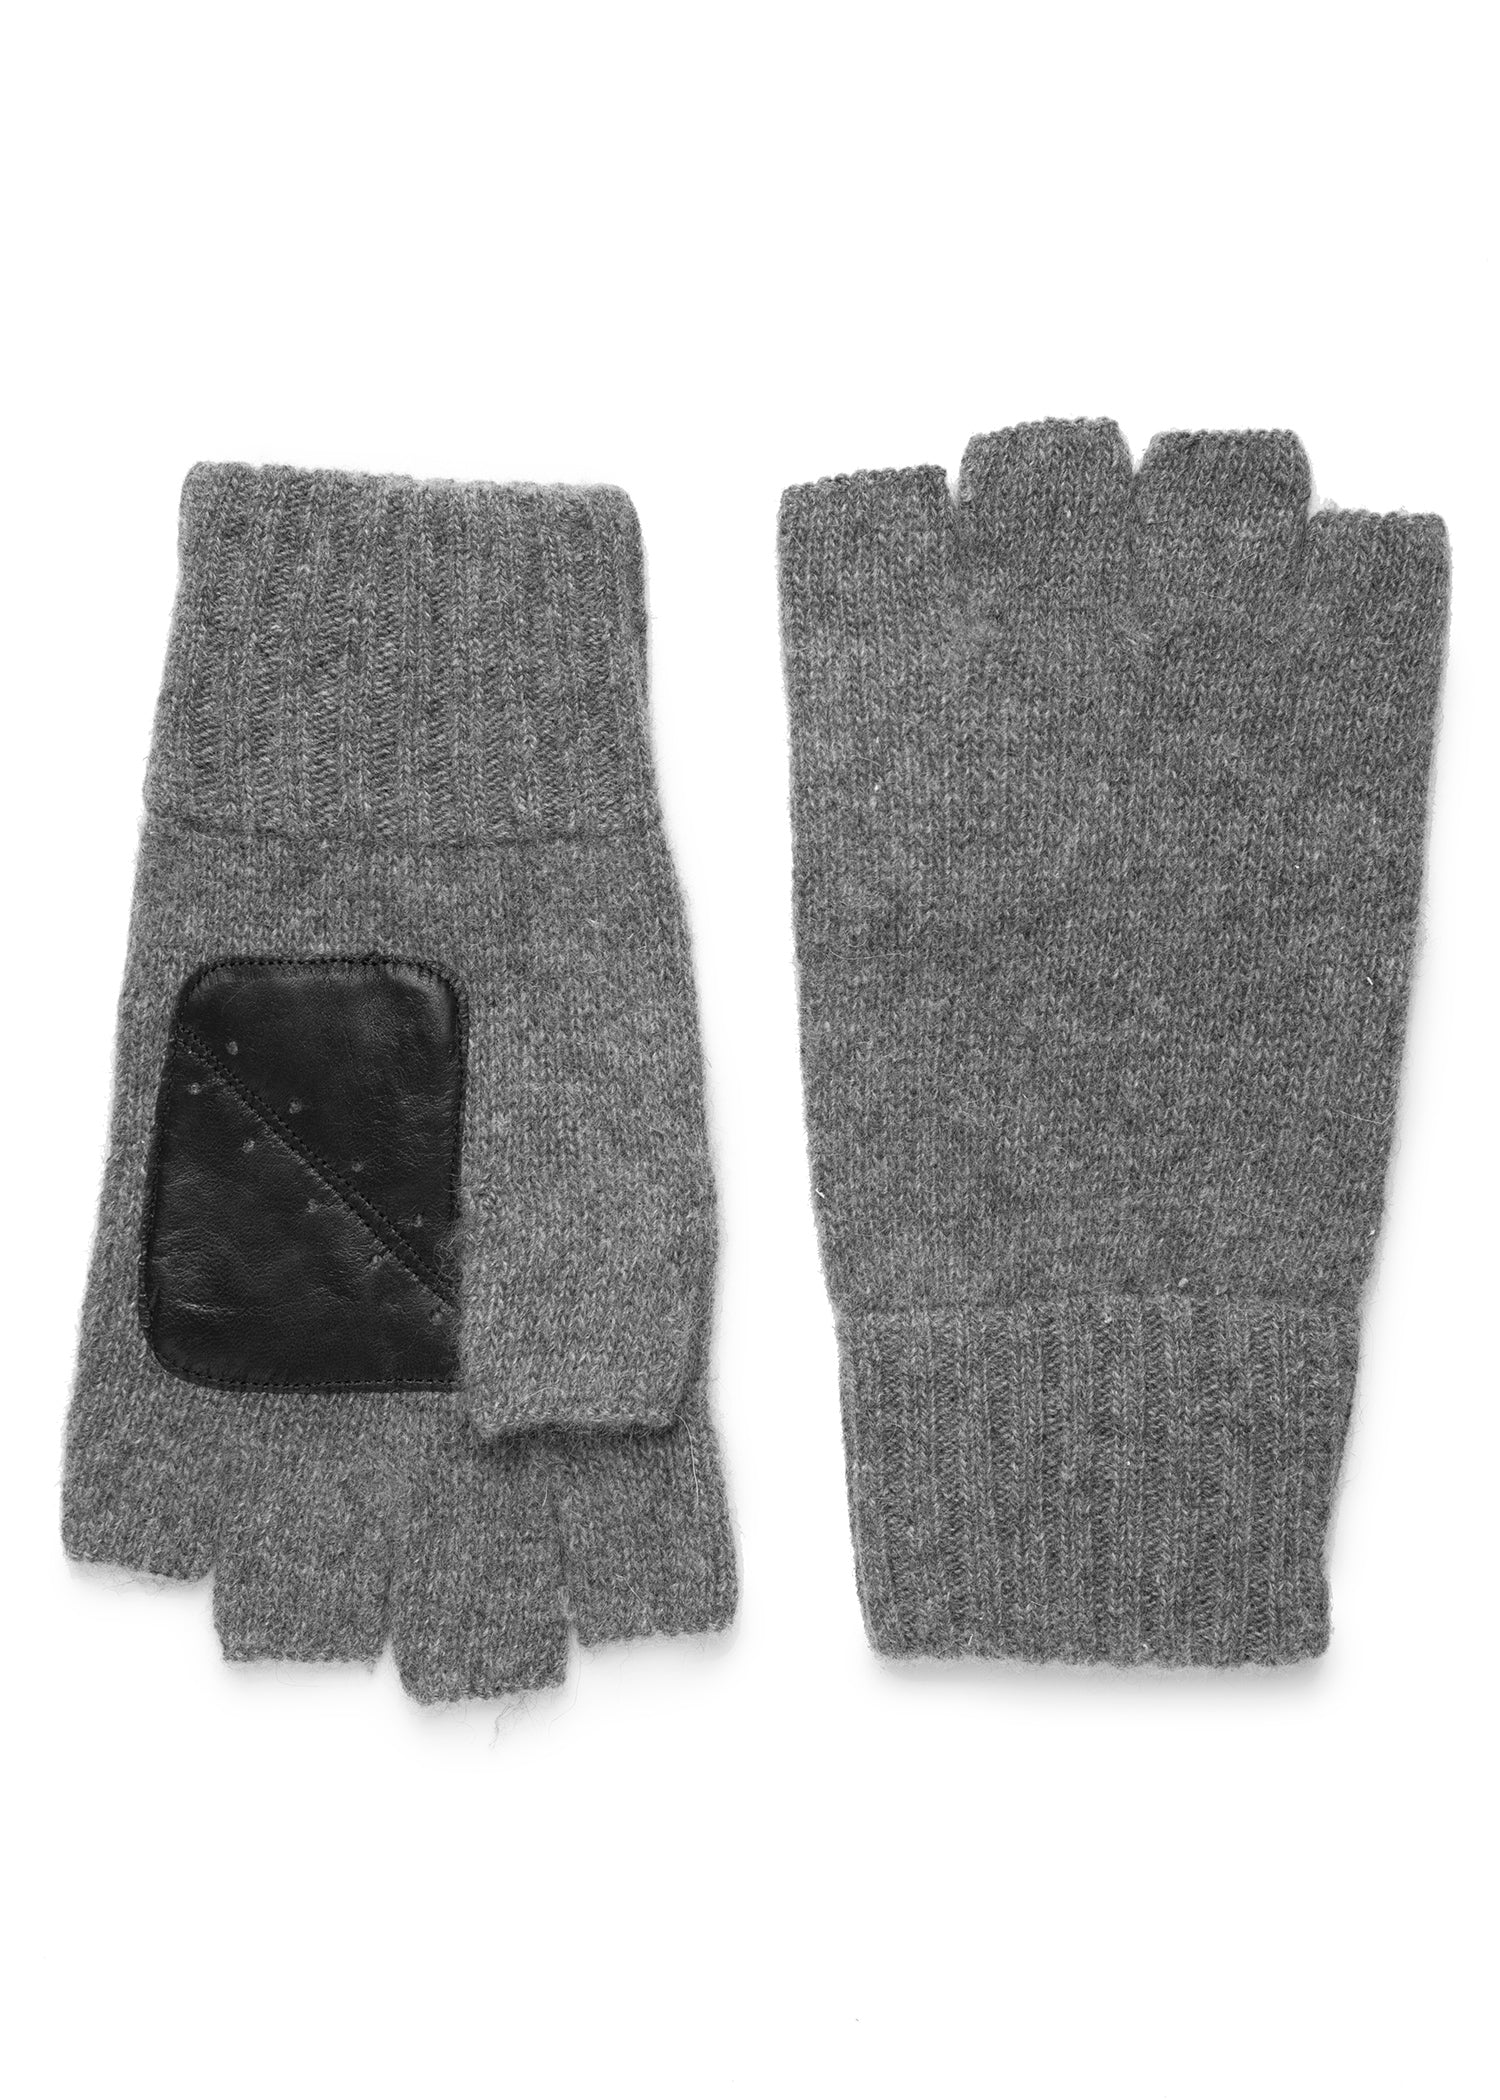 mens gray cashmere knit wrist length fingerless glove